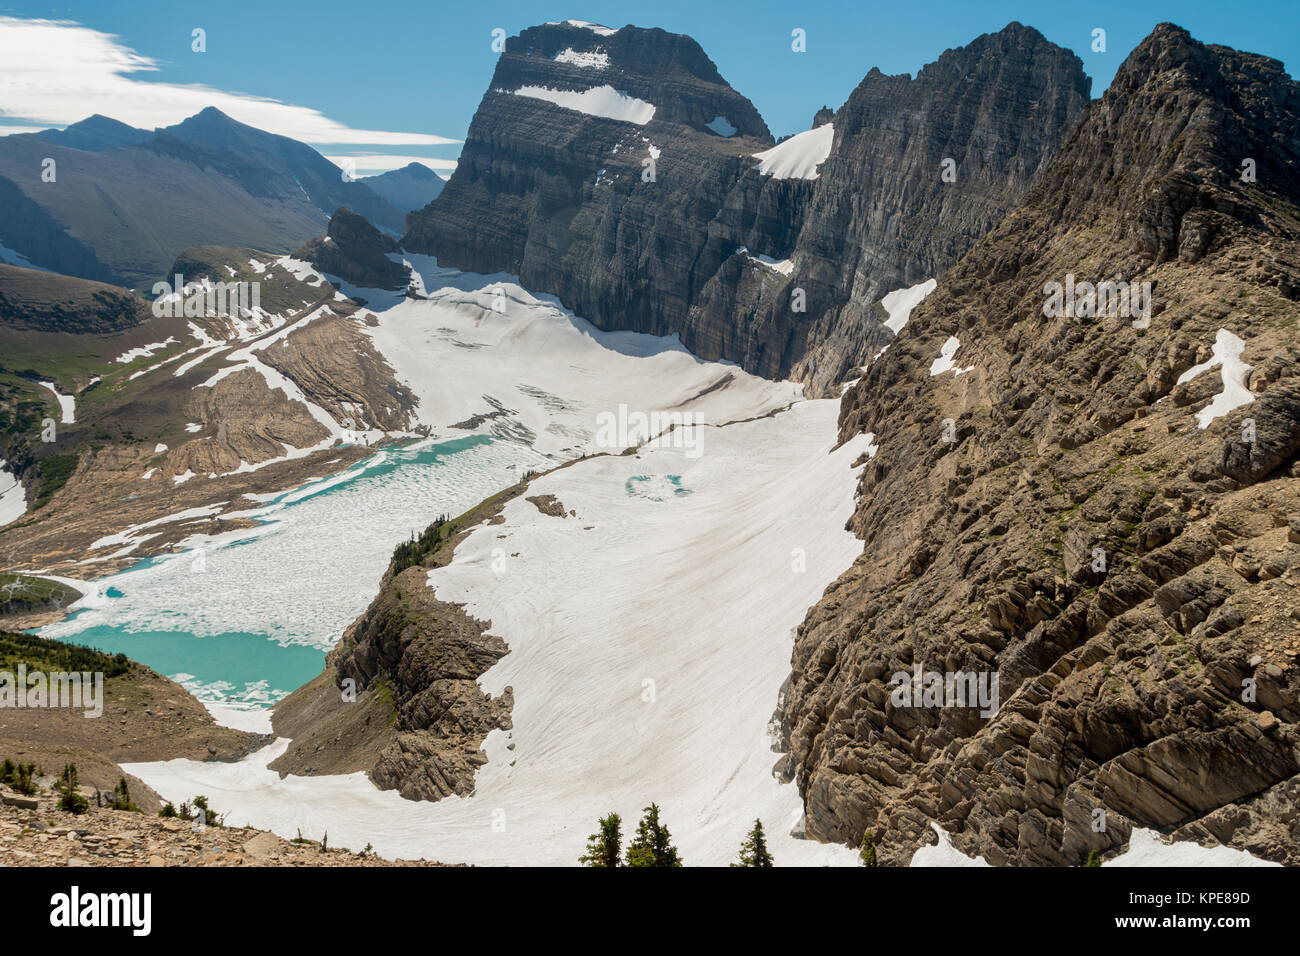 Grinnell and Salamander Glaciers from the Highline Trail in Glacier National Park, Montana - Stock Image